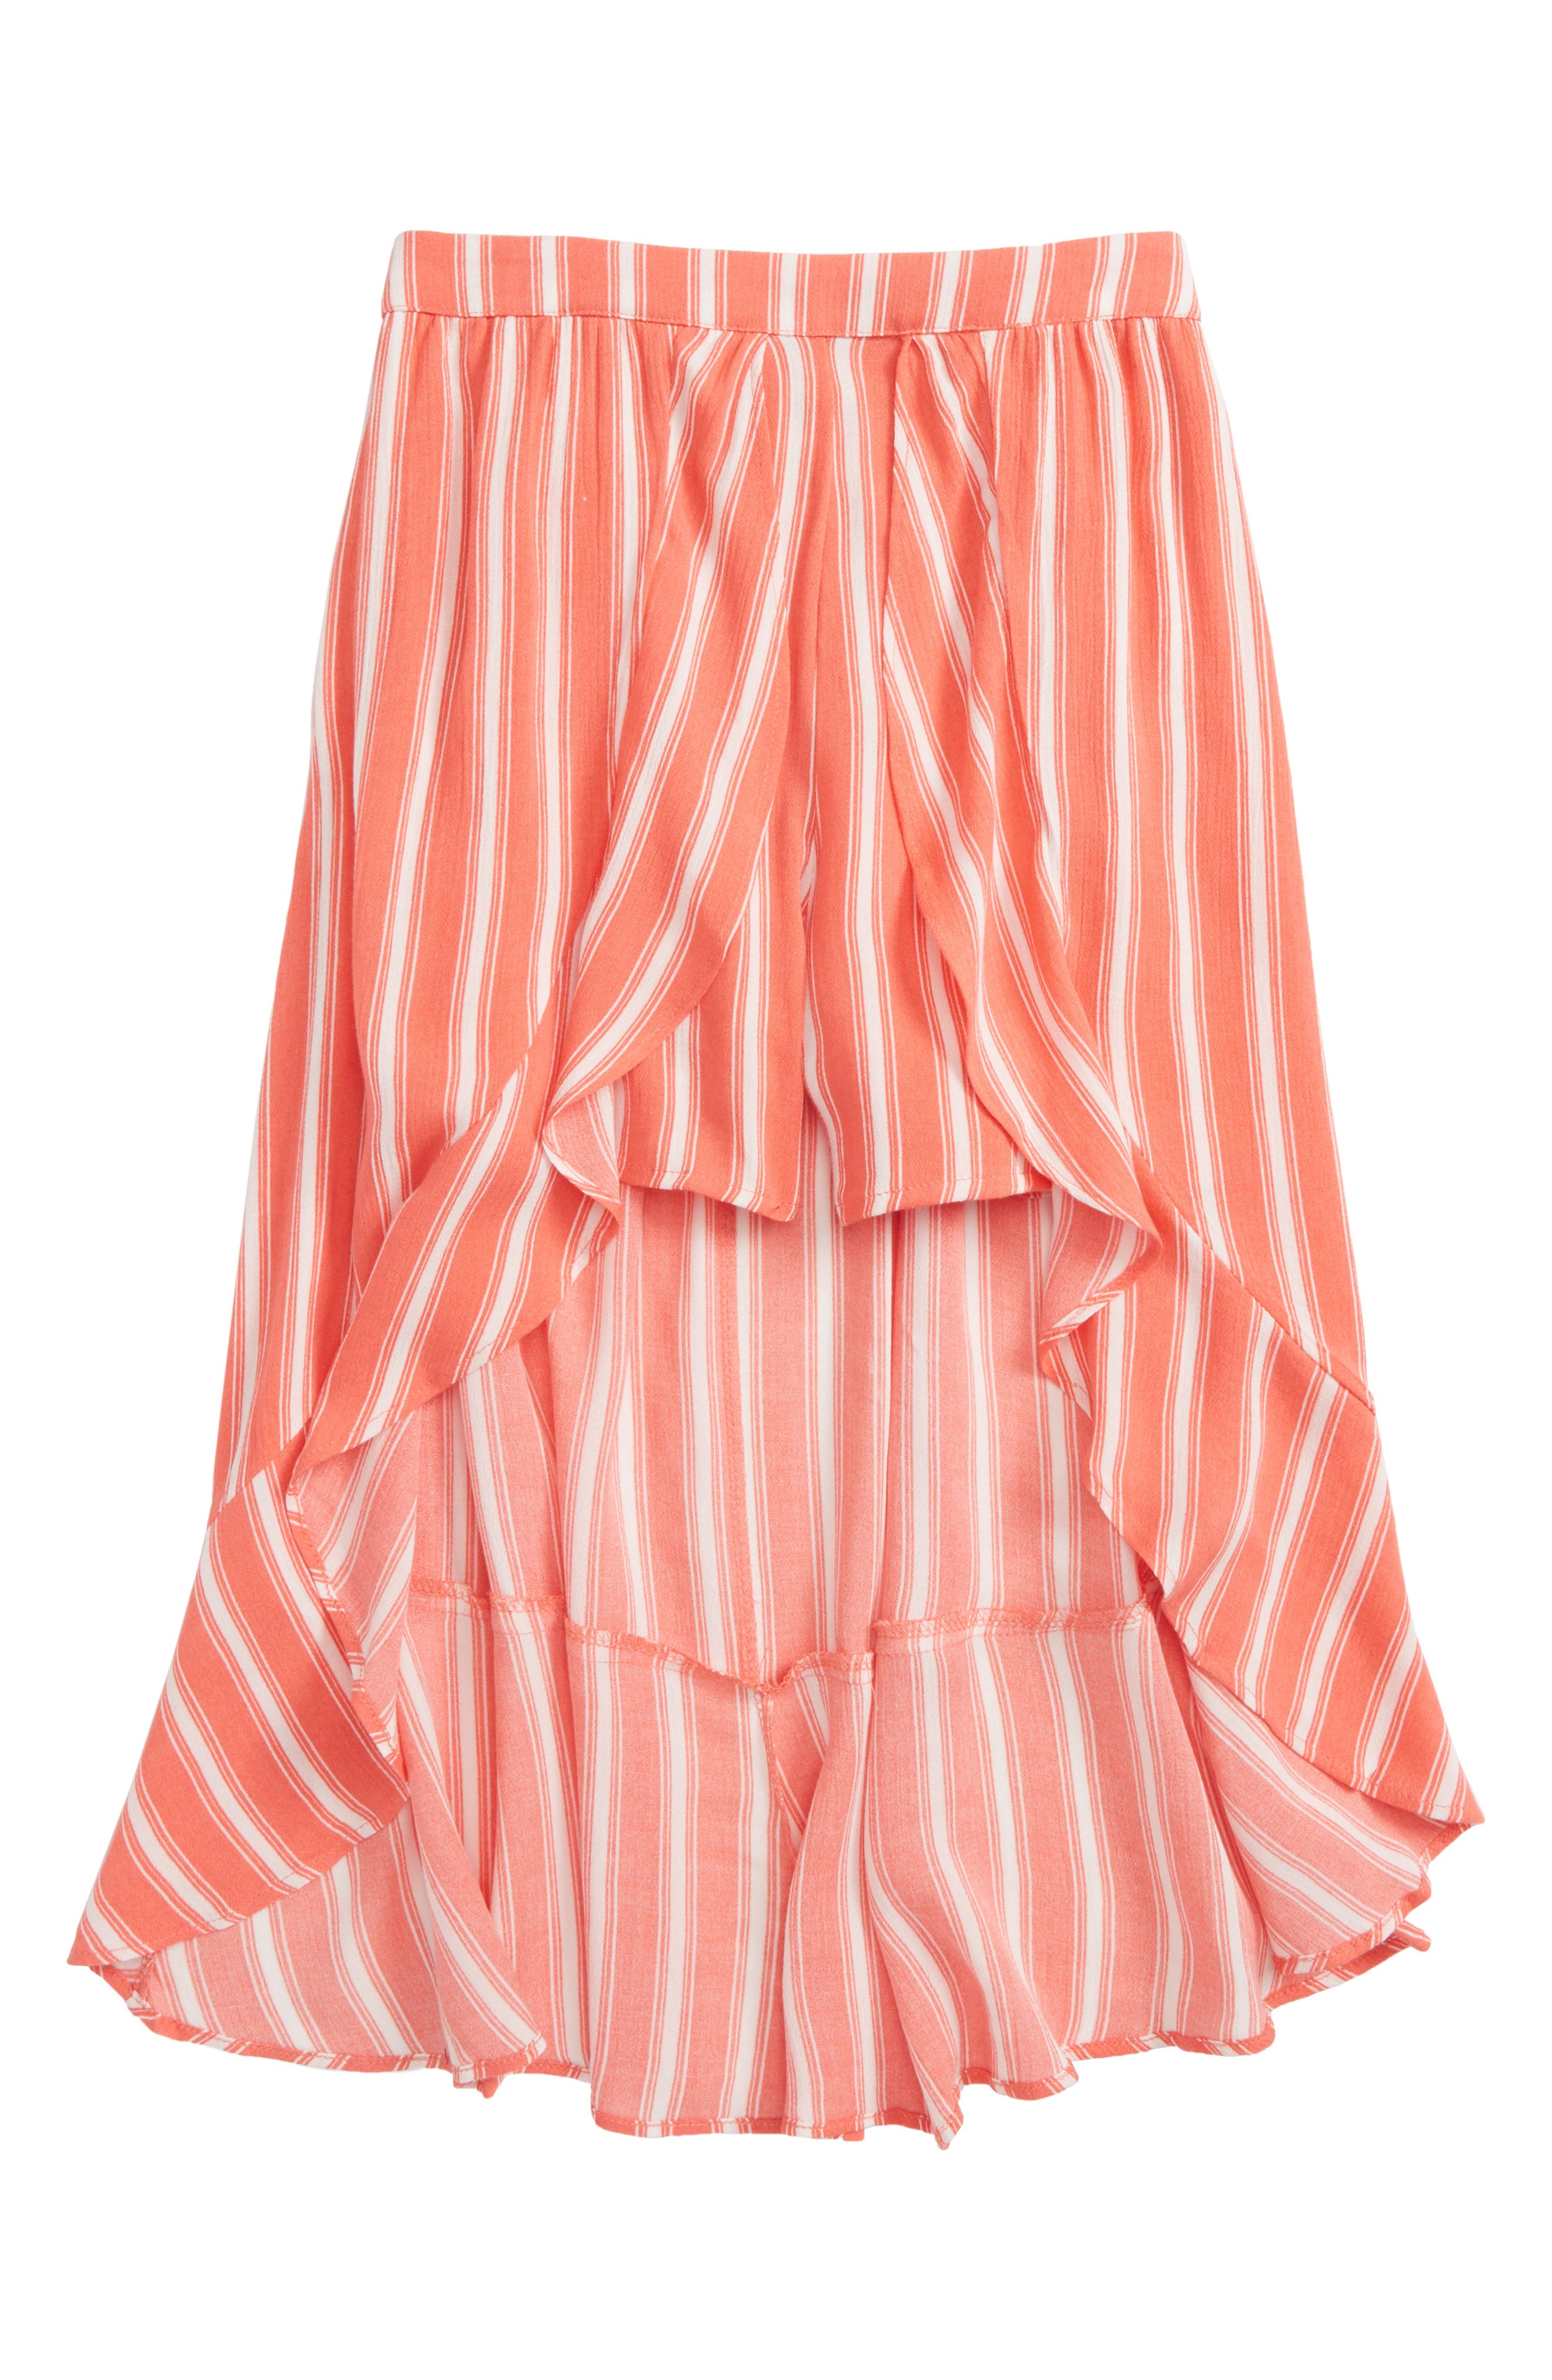 Stripe Walk Through Skirt,                         Main,                         color, Coral/ Ivory